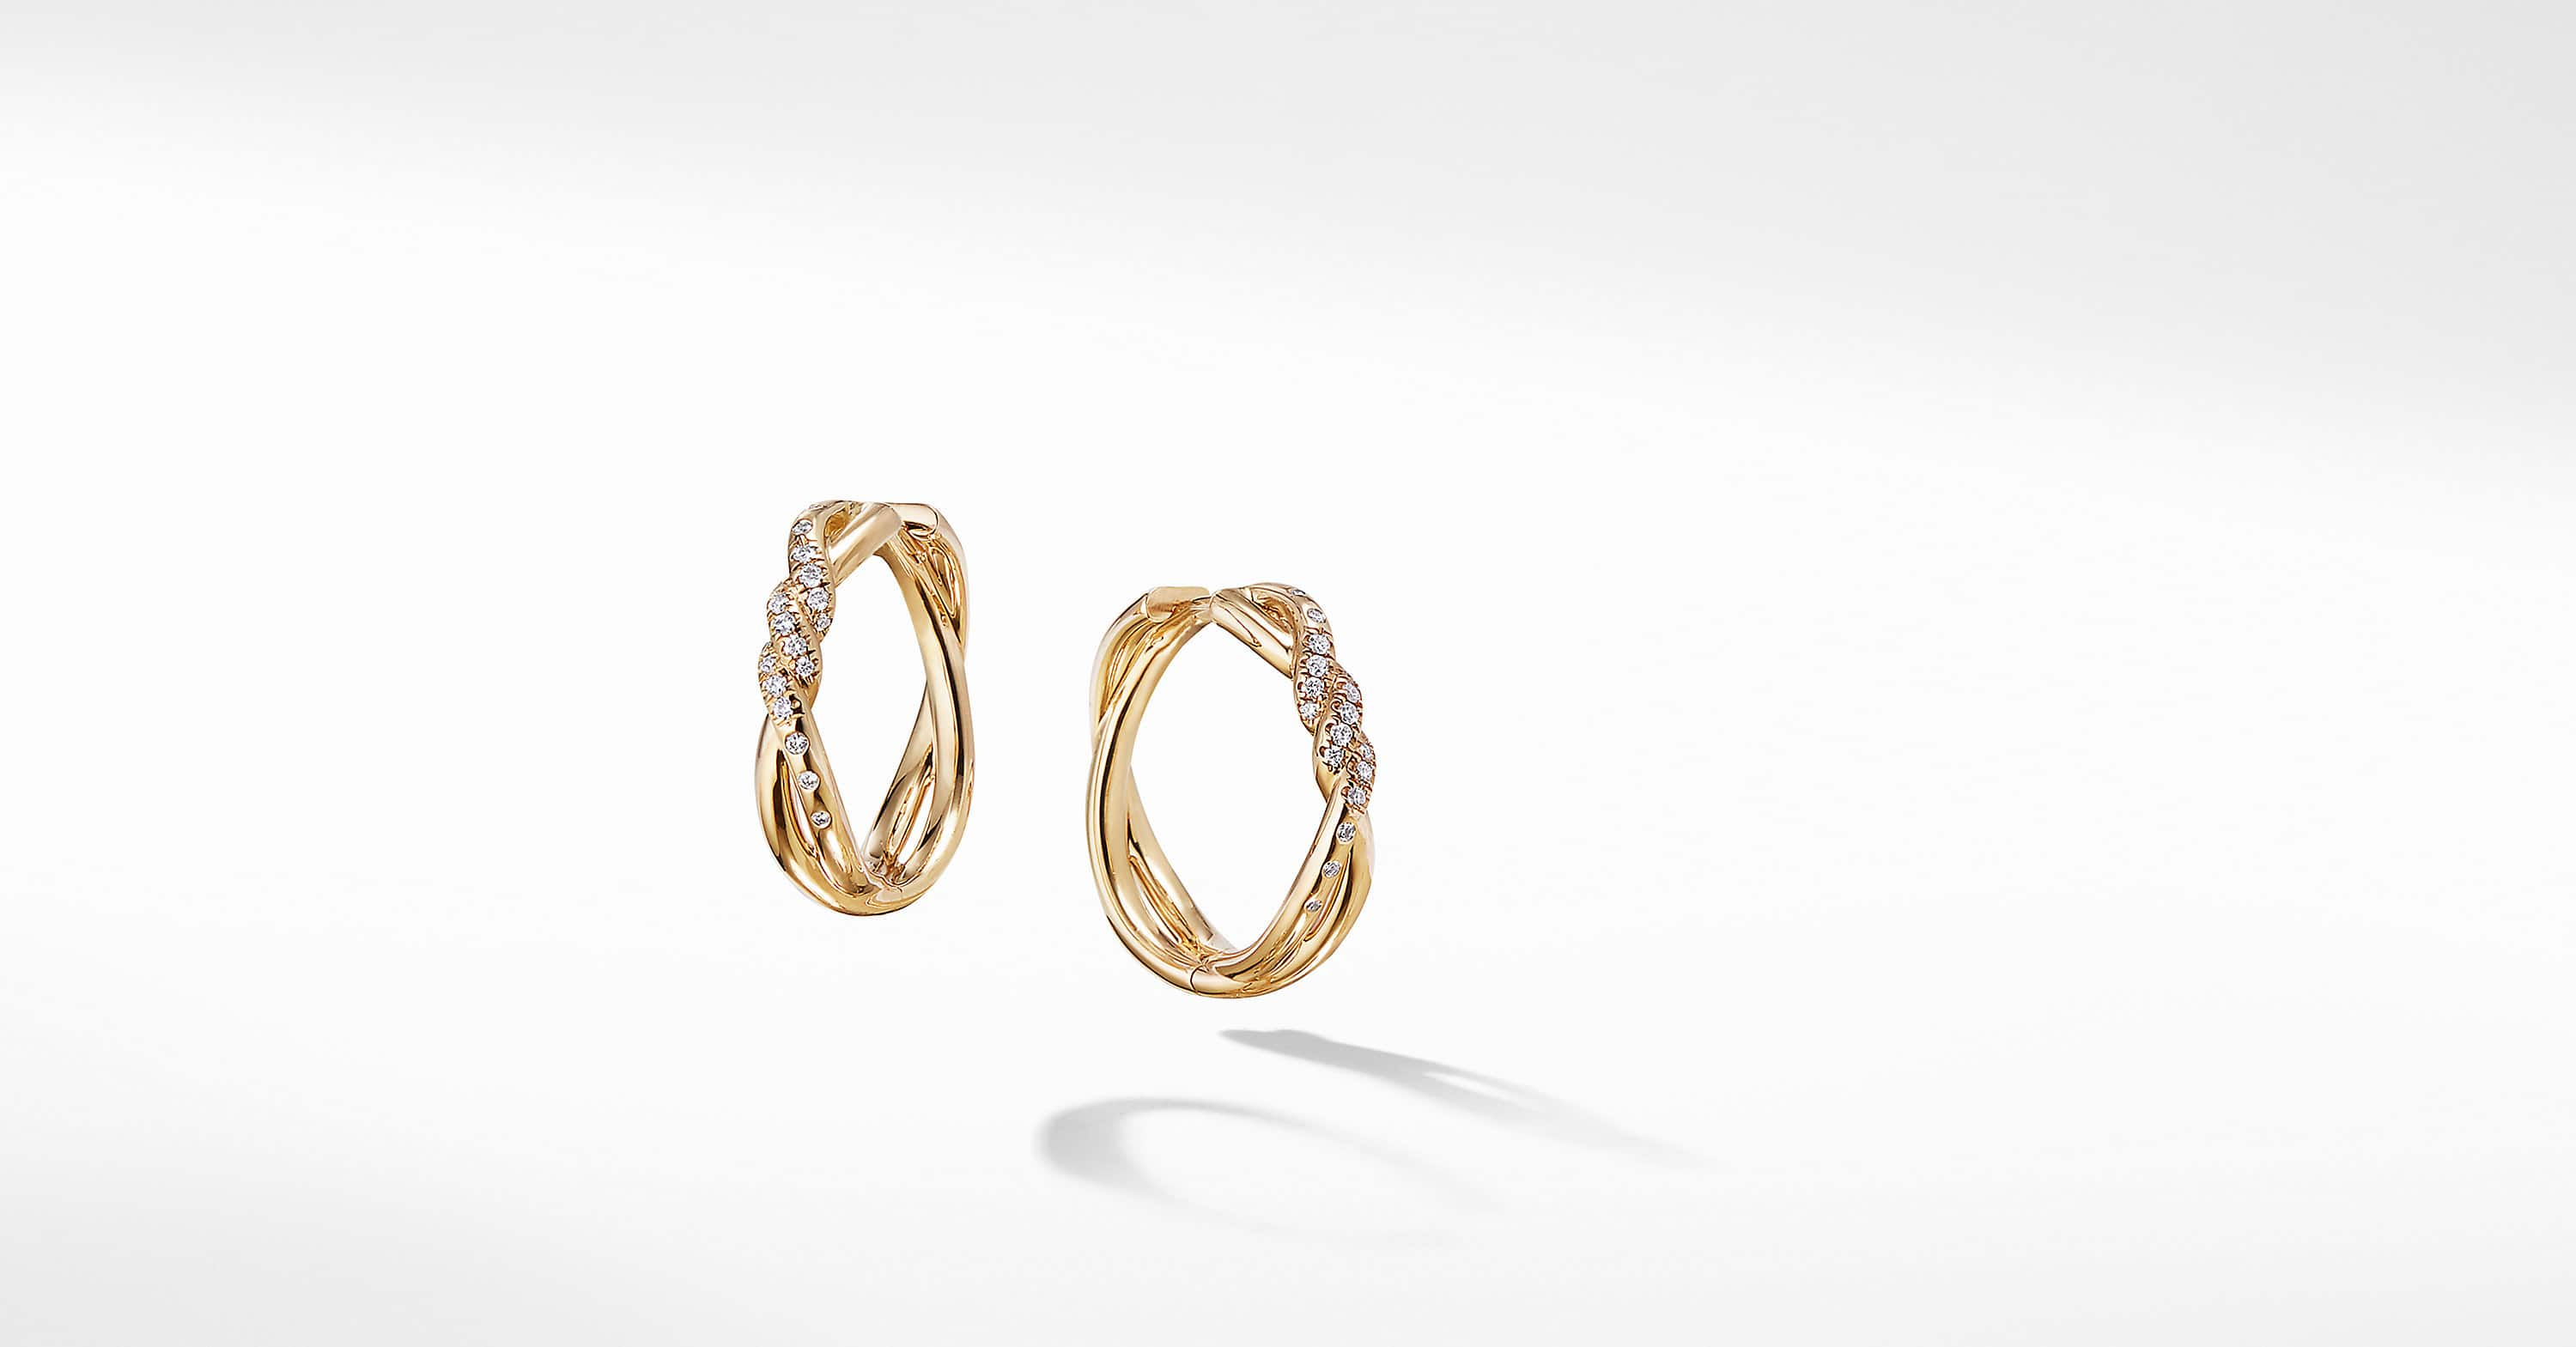 Continuance Hoop Earrings with Diamonds in 18K Gold